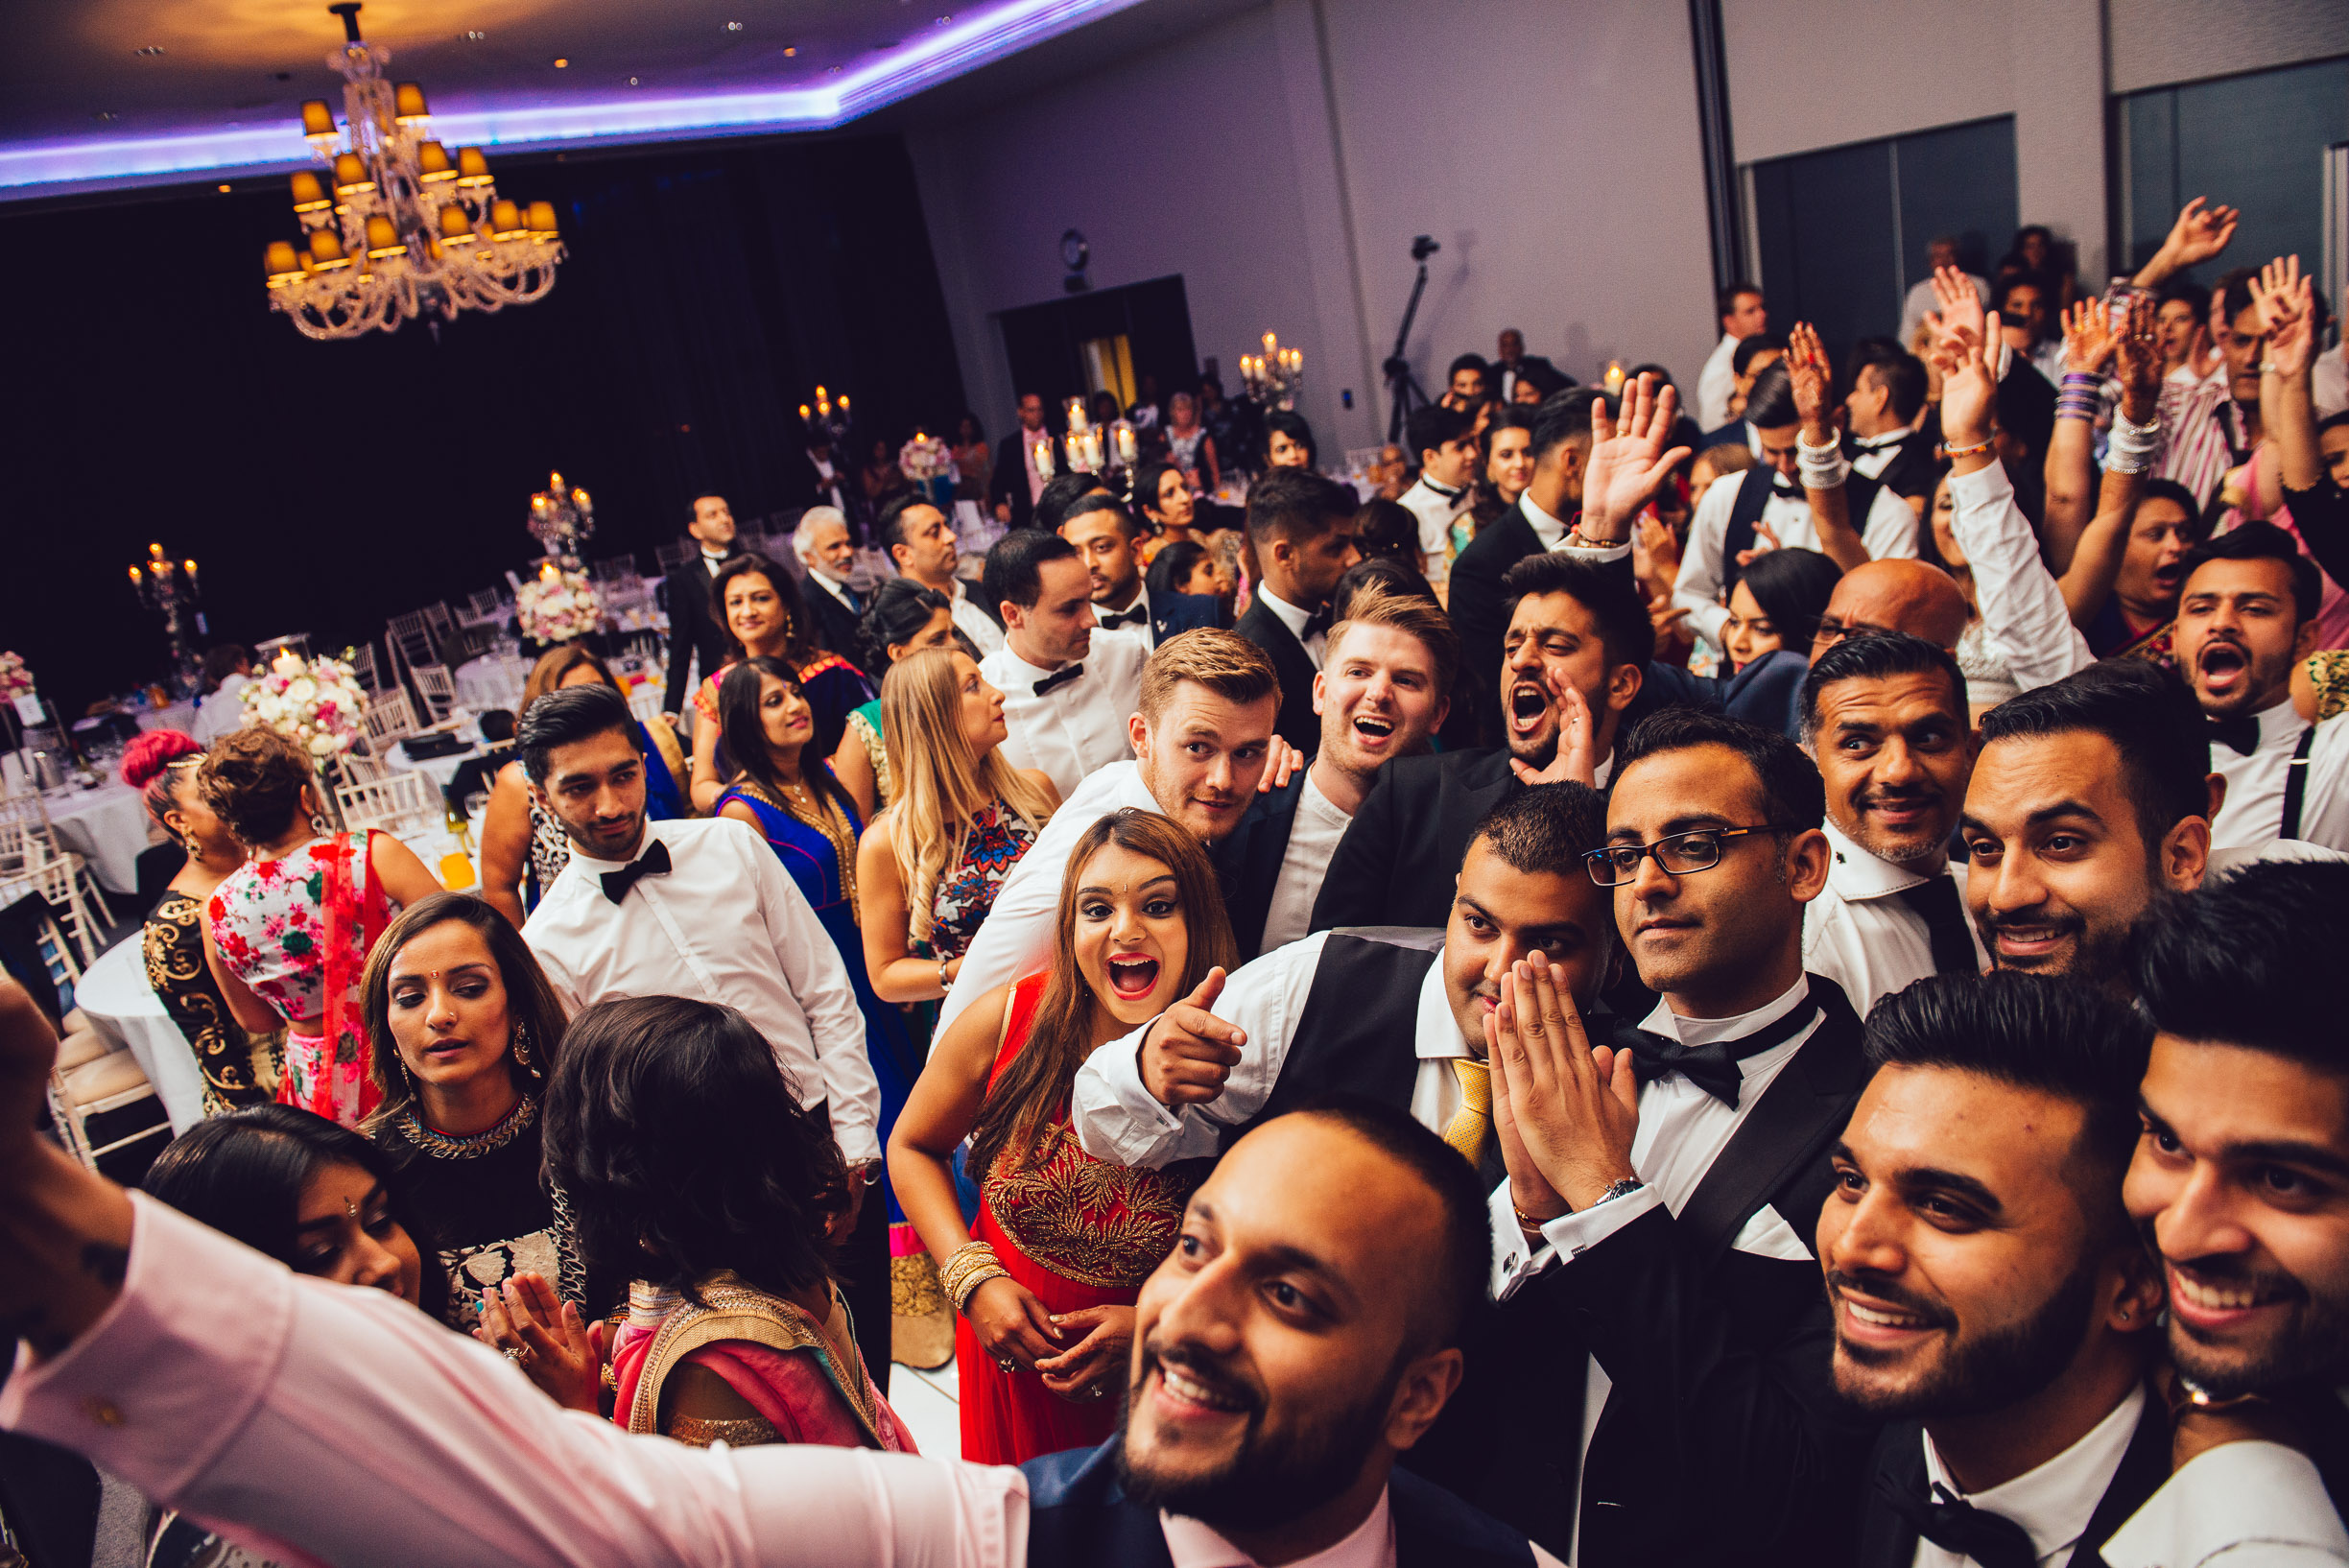 amit&ceema_eden_moments_wedding_photography-47